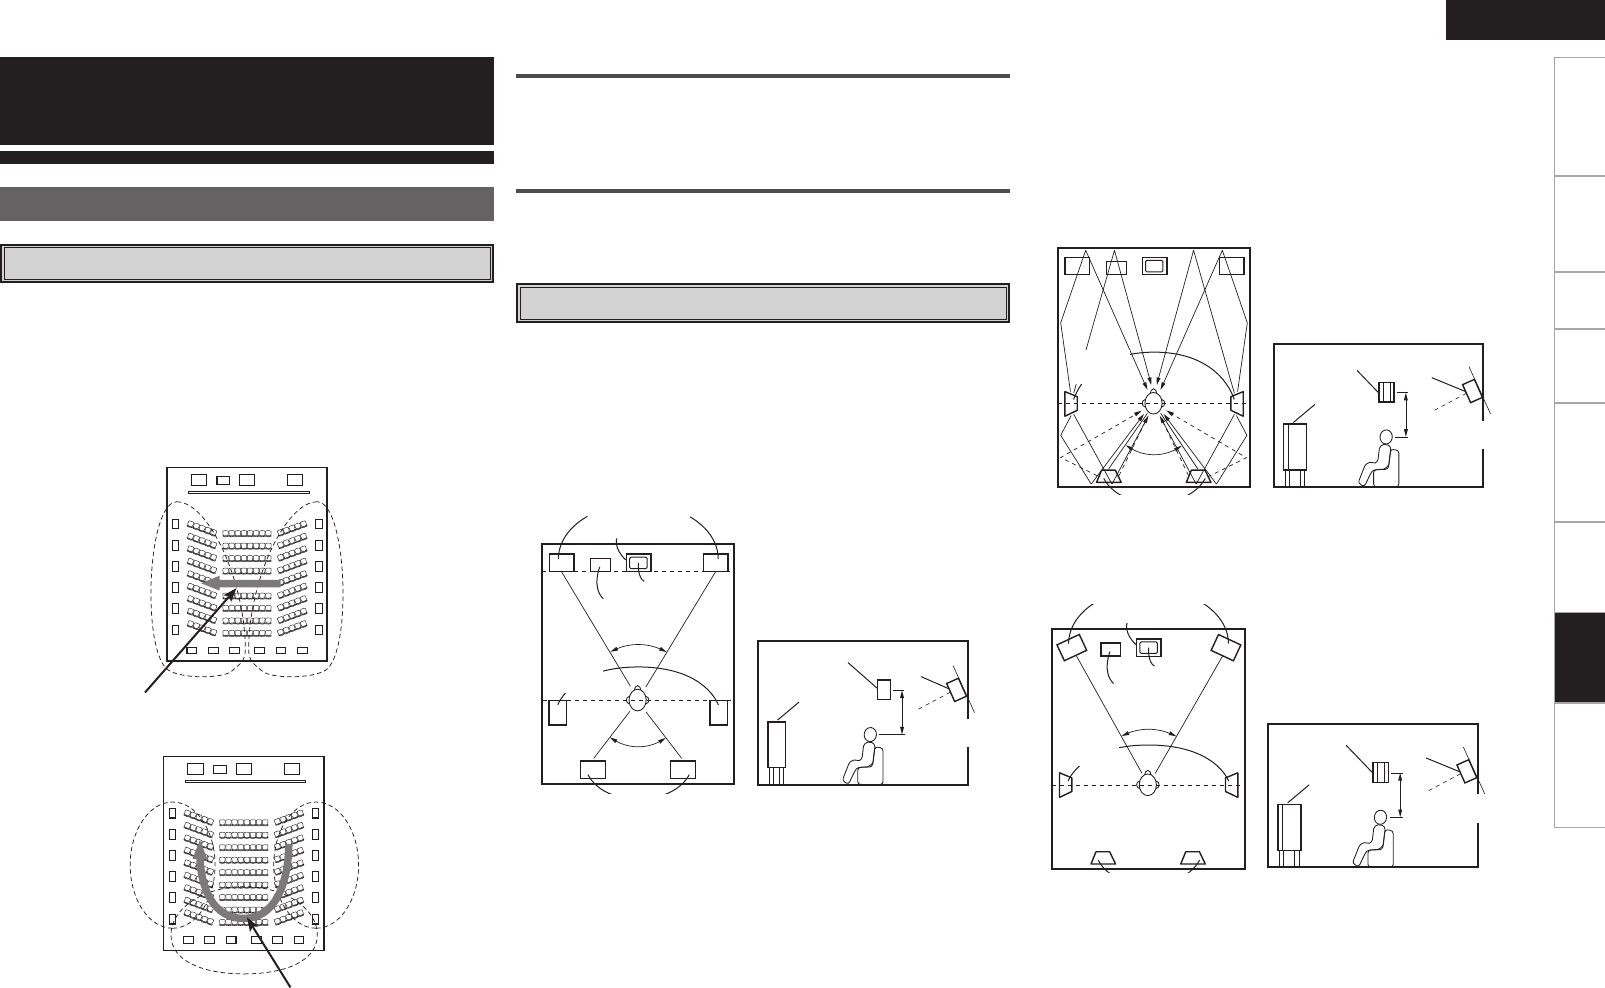 Page 53 of Denon Stereo Receiver AVR-1708 User Guide